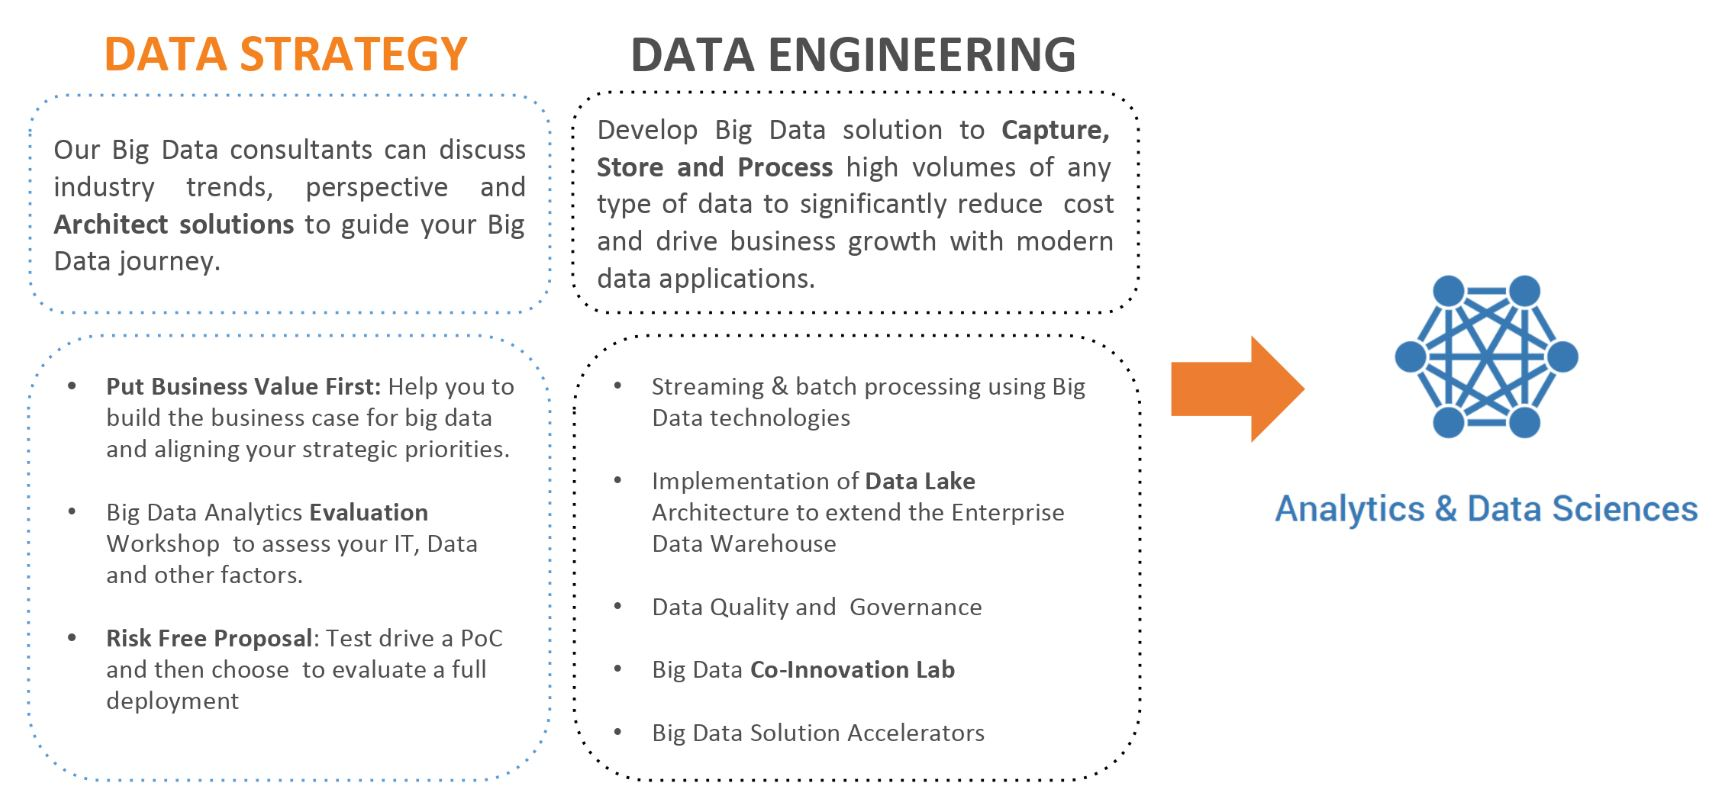 Y&L Consulting provides solutions and services geared towards making your  data simpler, scalable and easier to analyze to generate more insight.